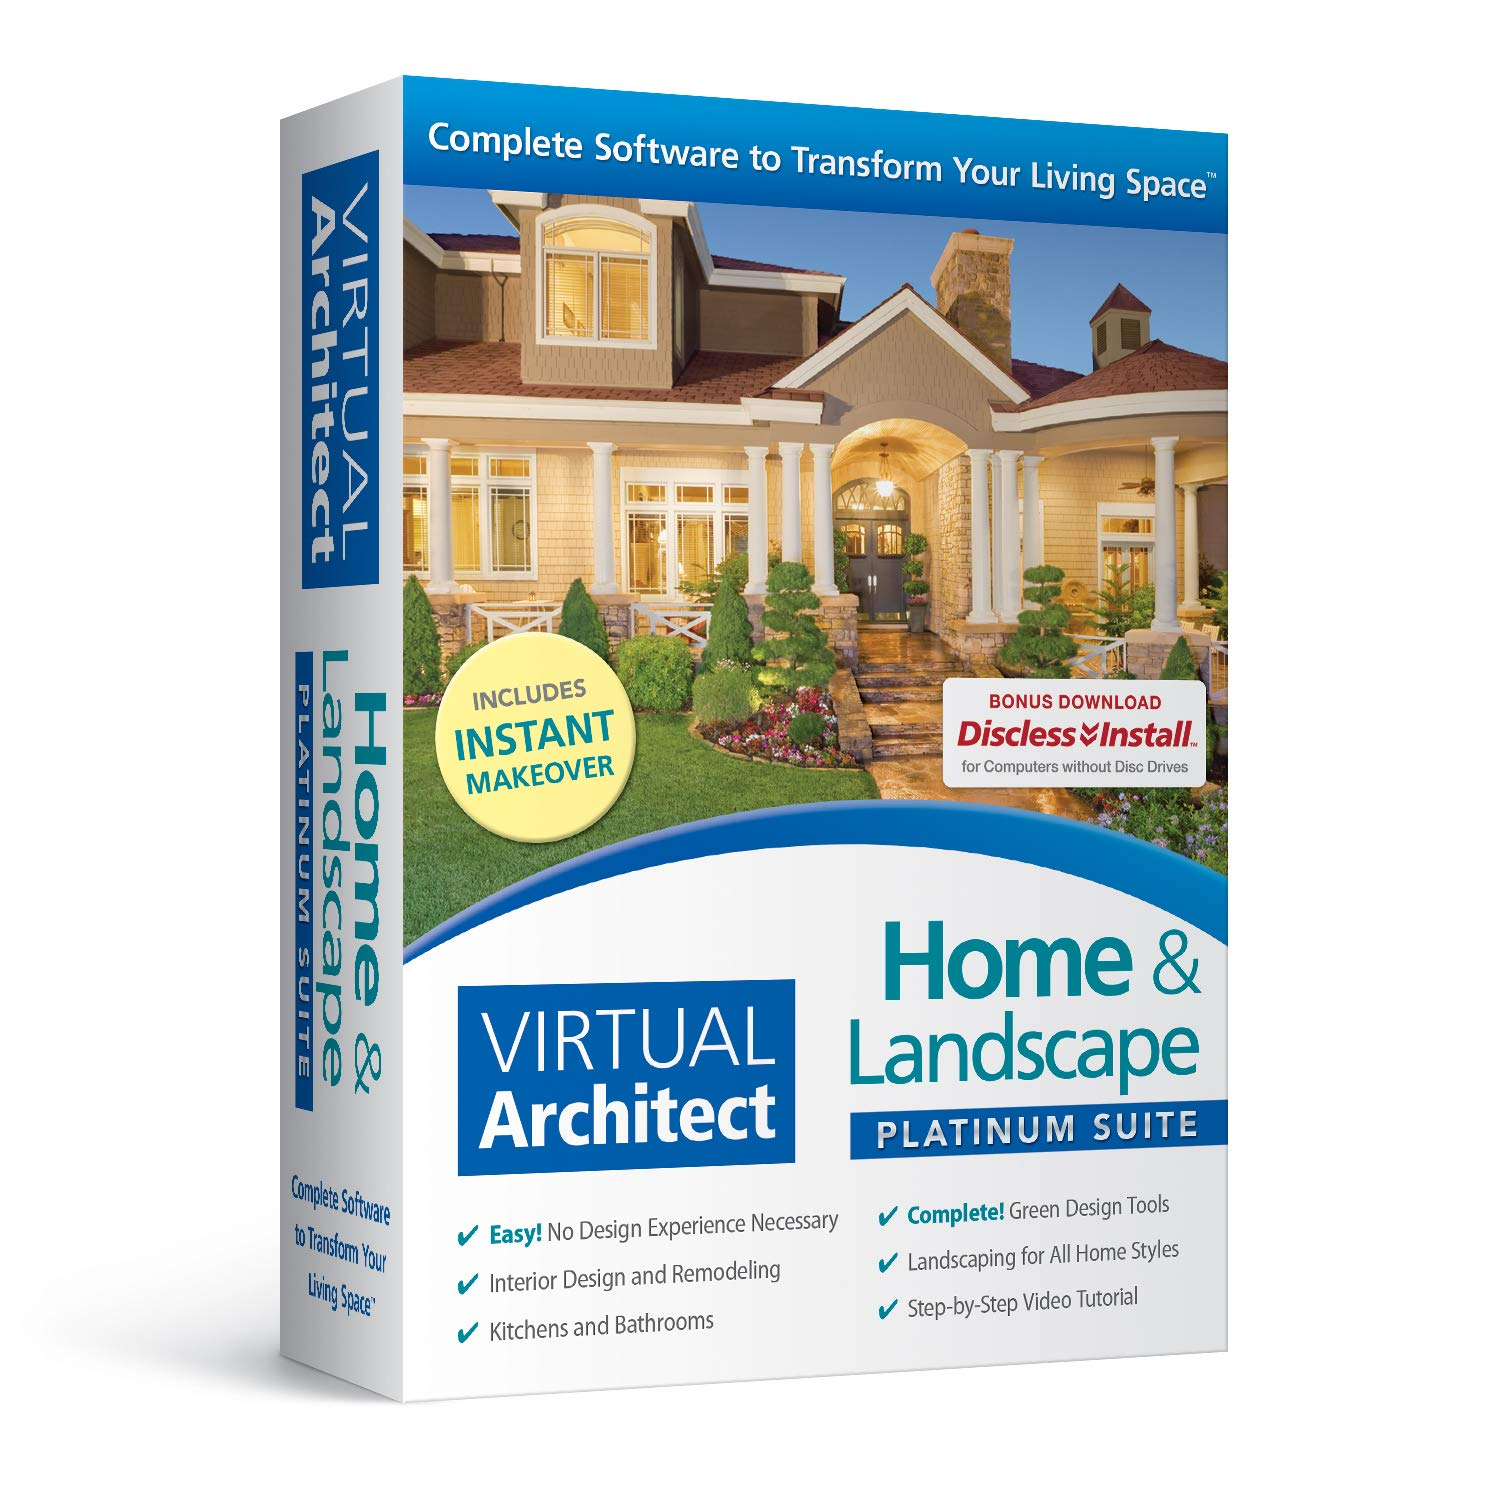 Virtual Architect Home & Landscape Platinum Suite by Nova Development US